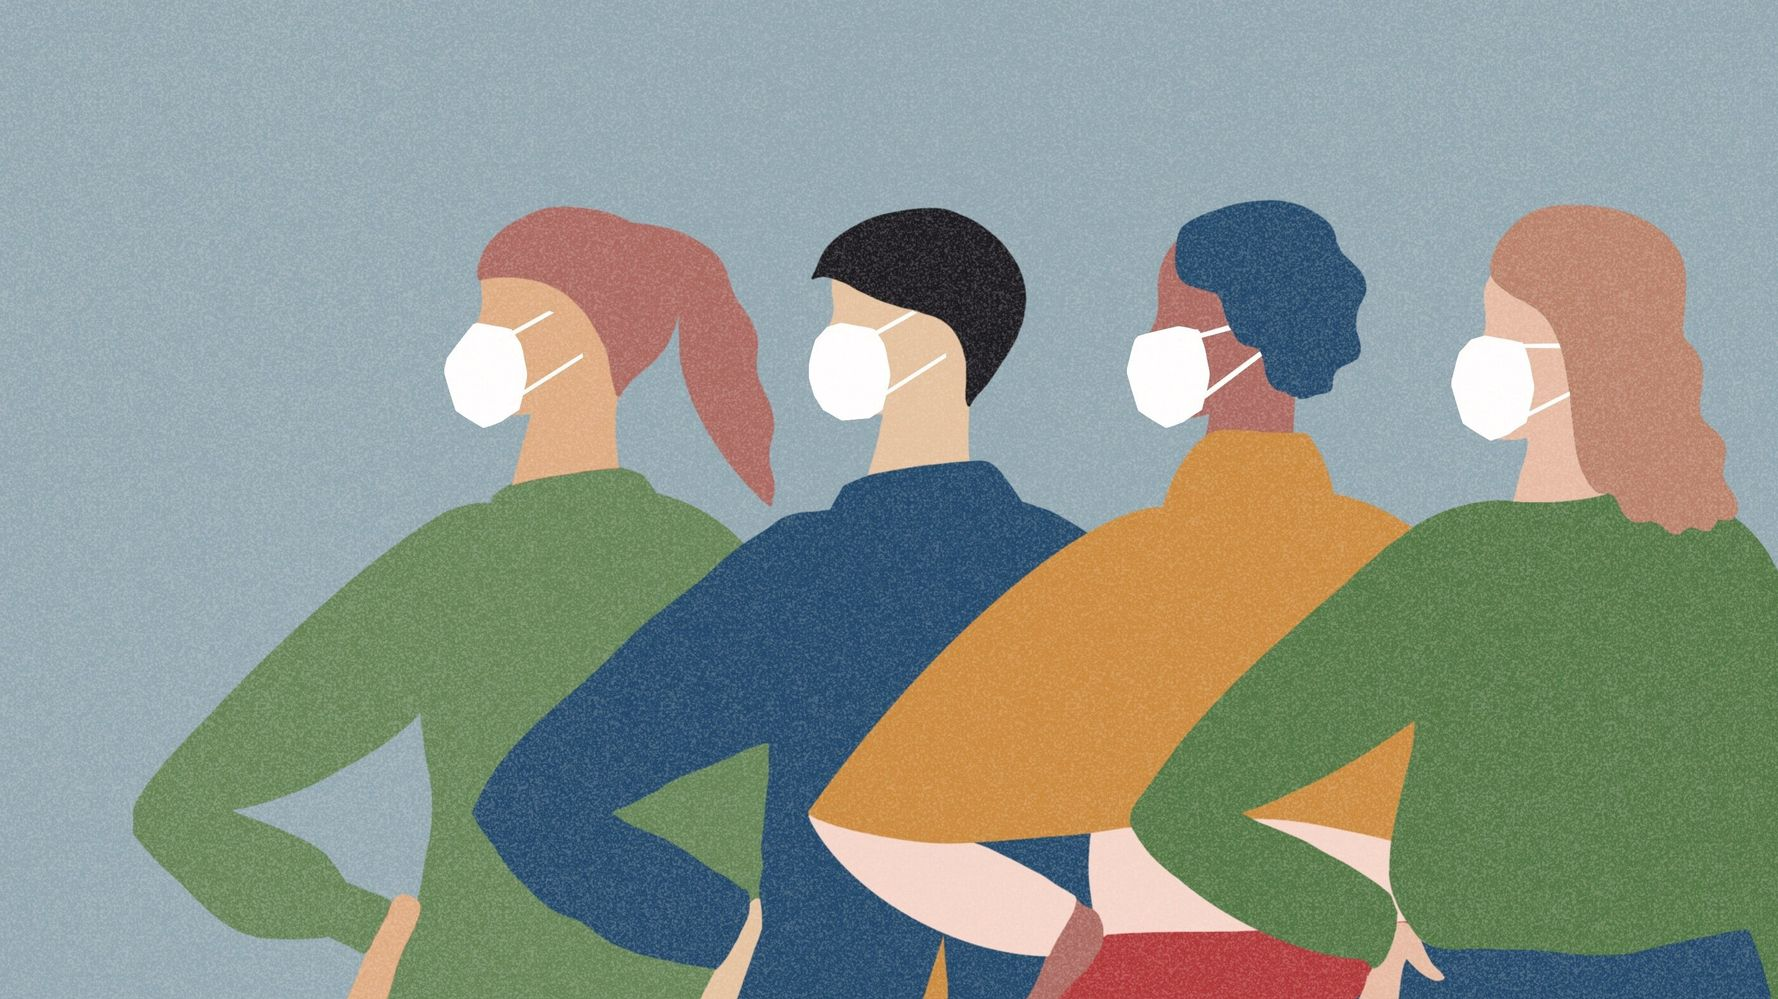 Health Experts Want People To Know Face Covers Can Protect The Wearer Too